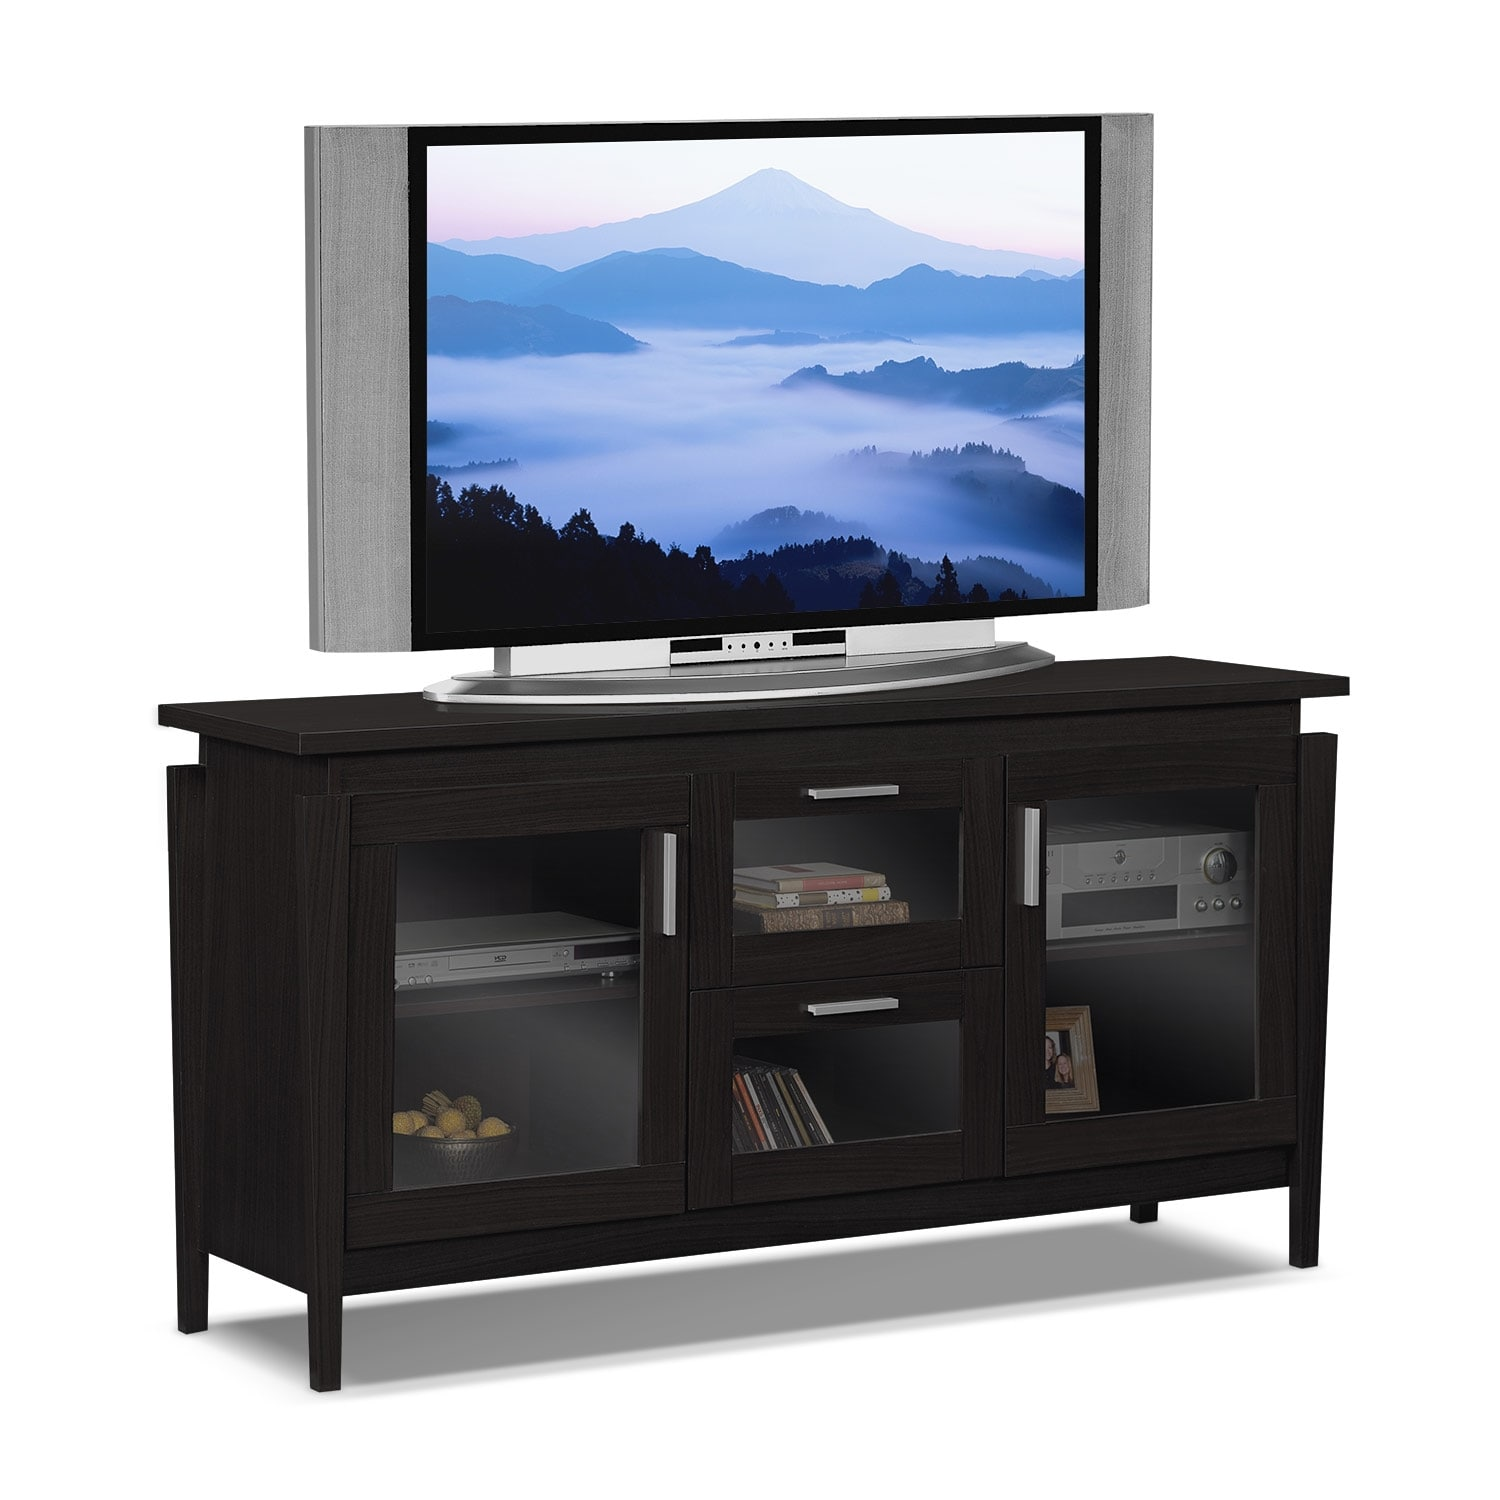 saber  tv stand  merlot  value city furniture - hover to zoom